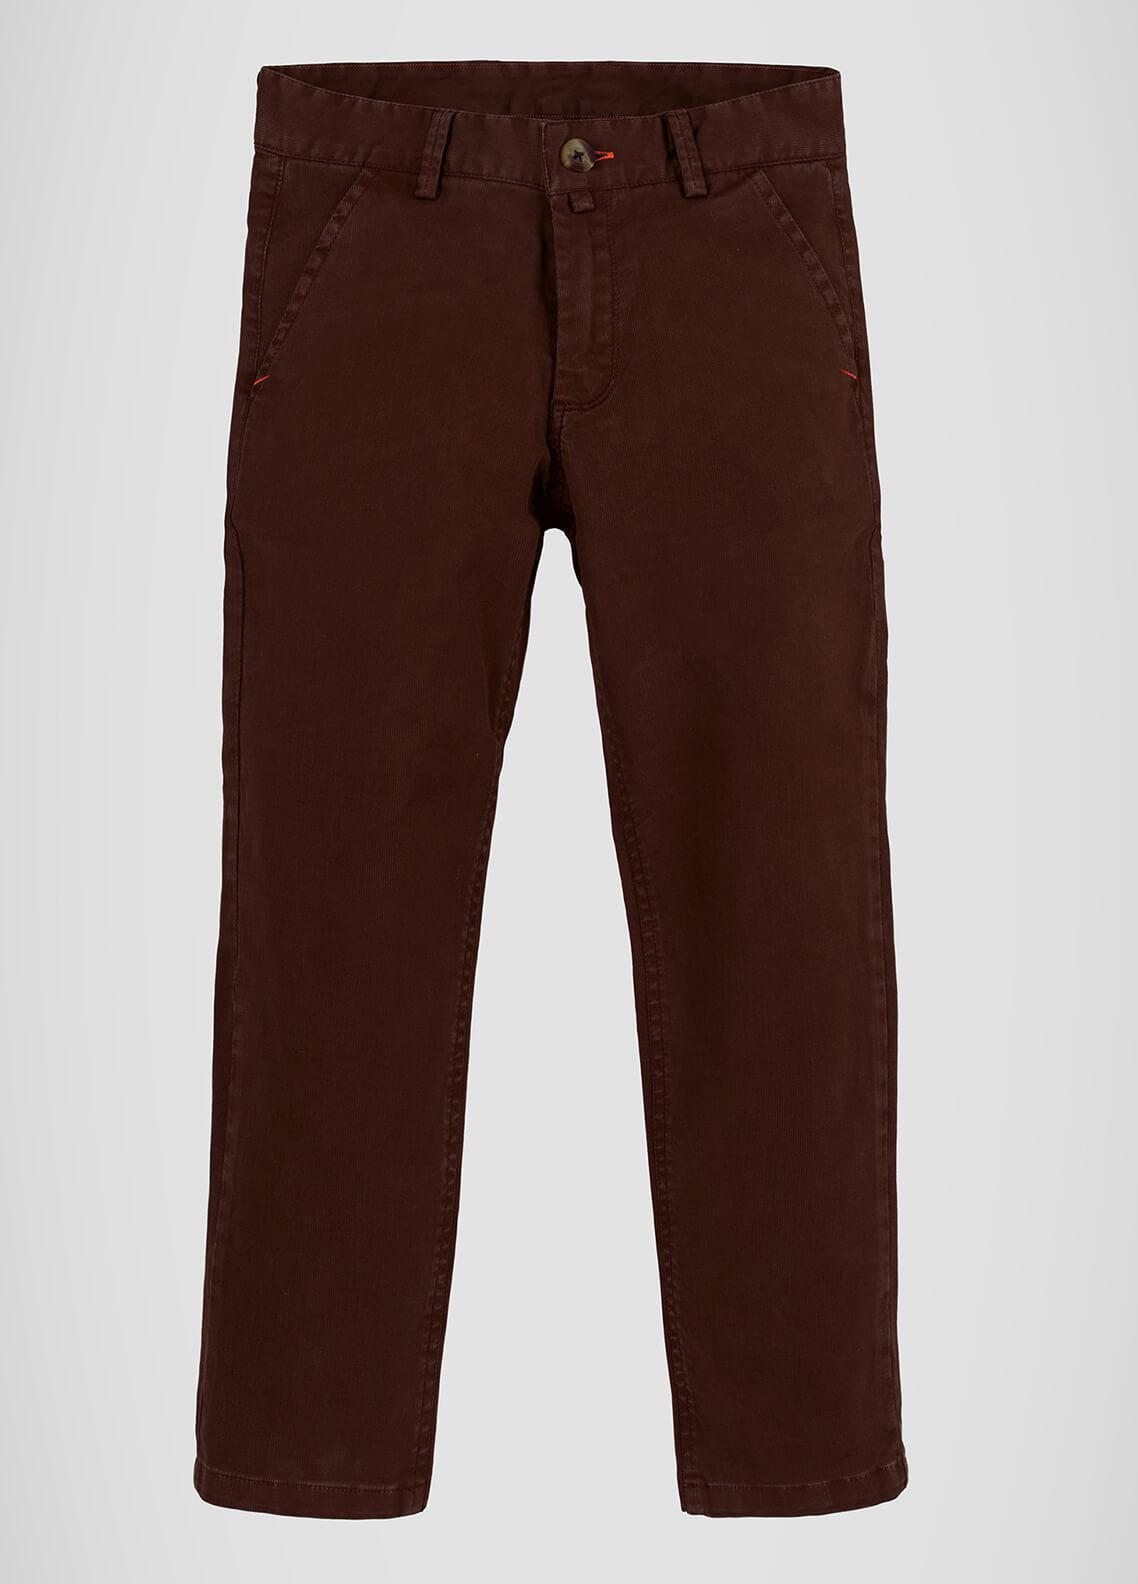 Brumano Cotton Casual Trousers for Boys -  BRM-555-Burgundy